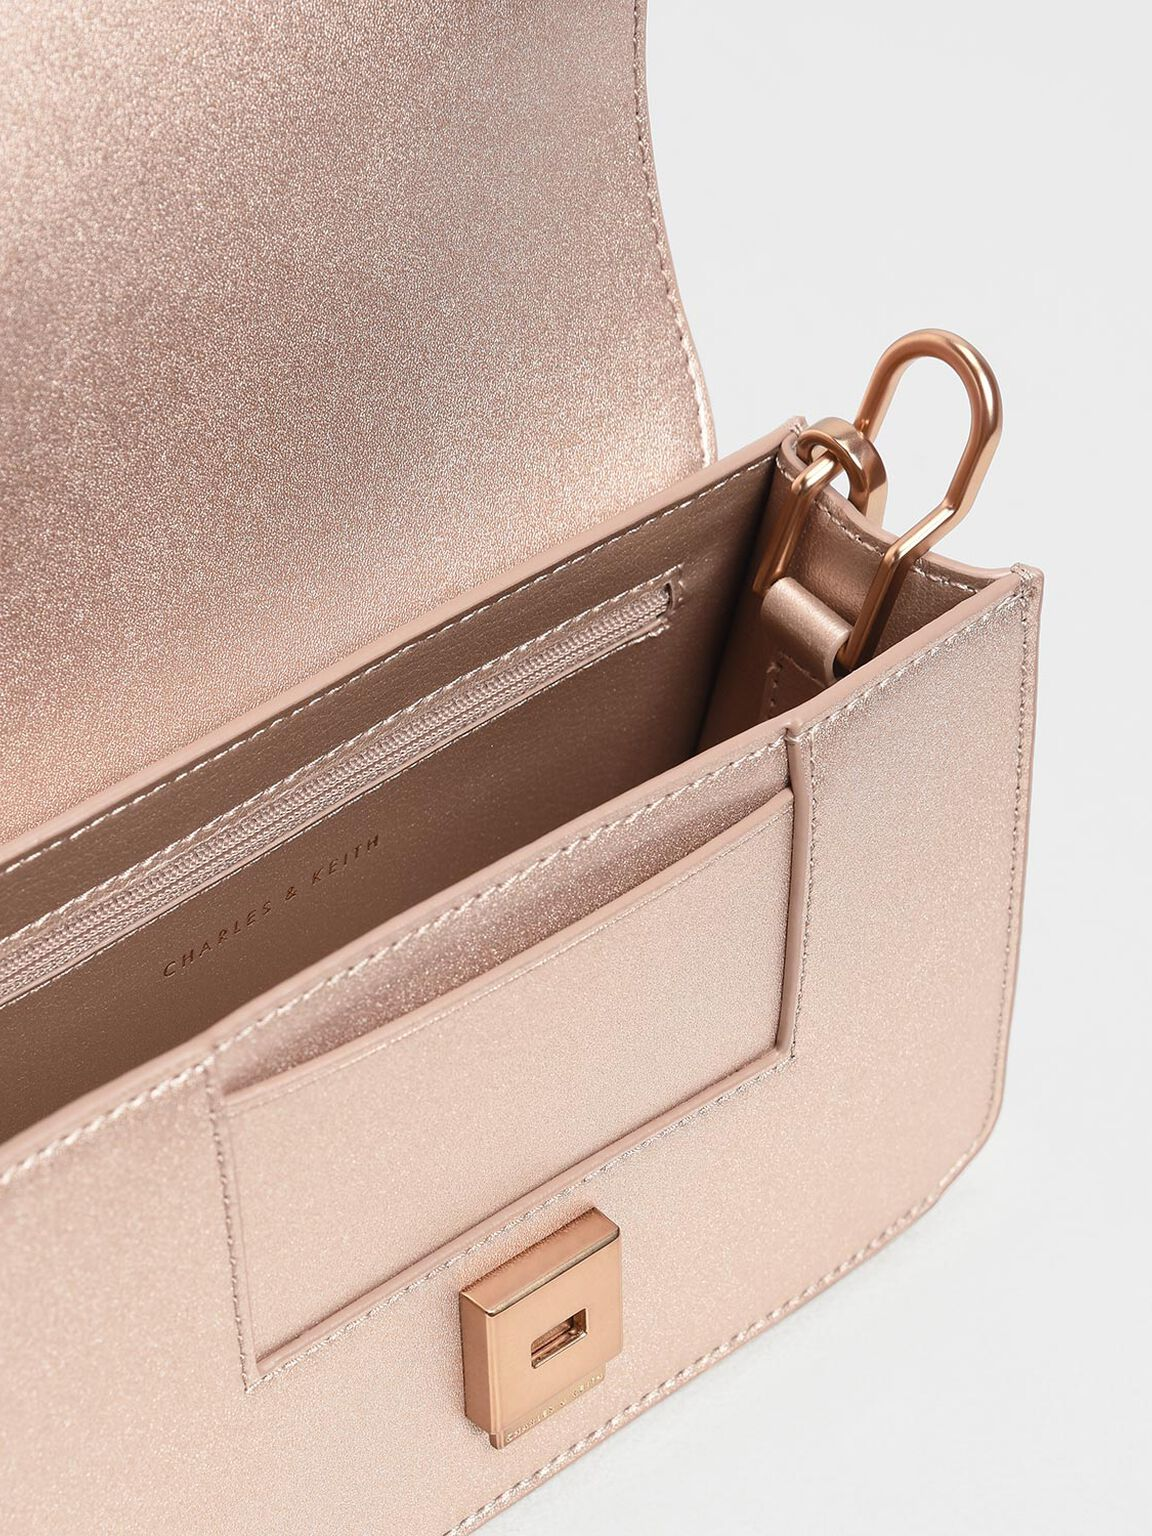 Front Tab Metallic Push Lock Bag, Rose Gold, hi-res